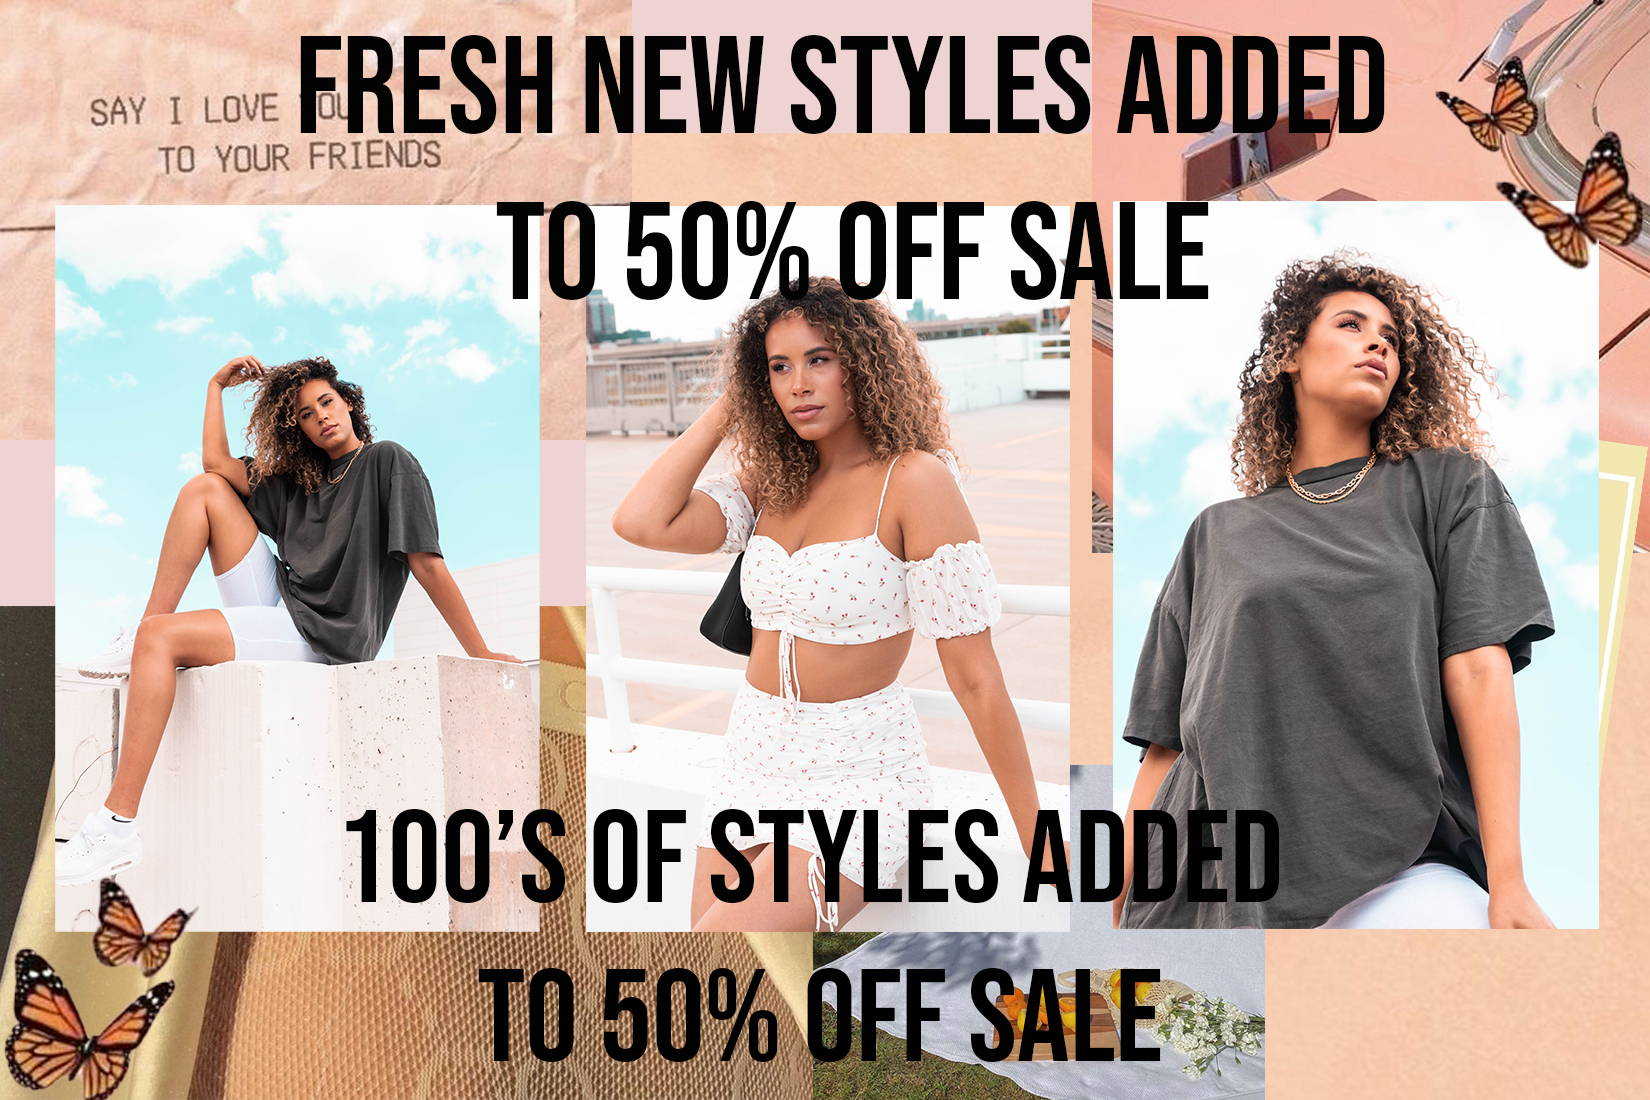 New styles added to 50% off sale